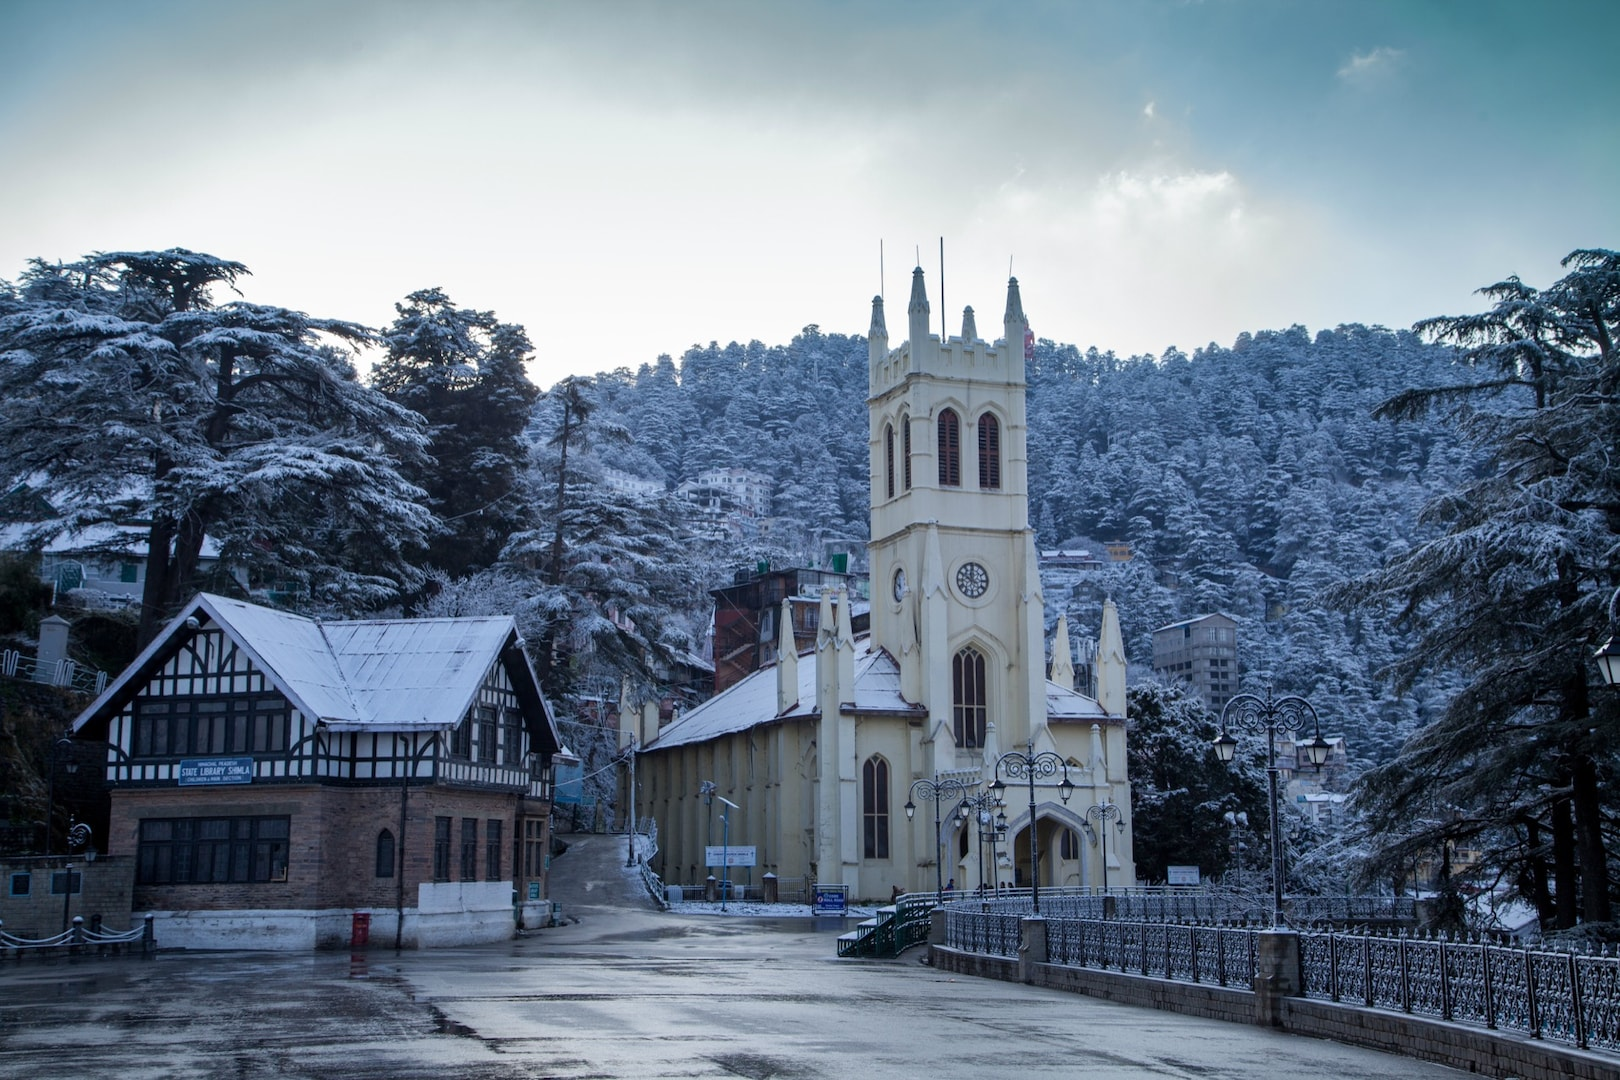 Christ Church Shimla - Timings, Entry Fees, Location, Facts